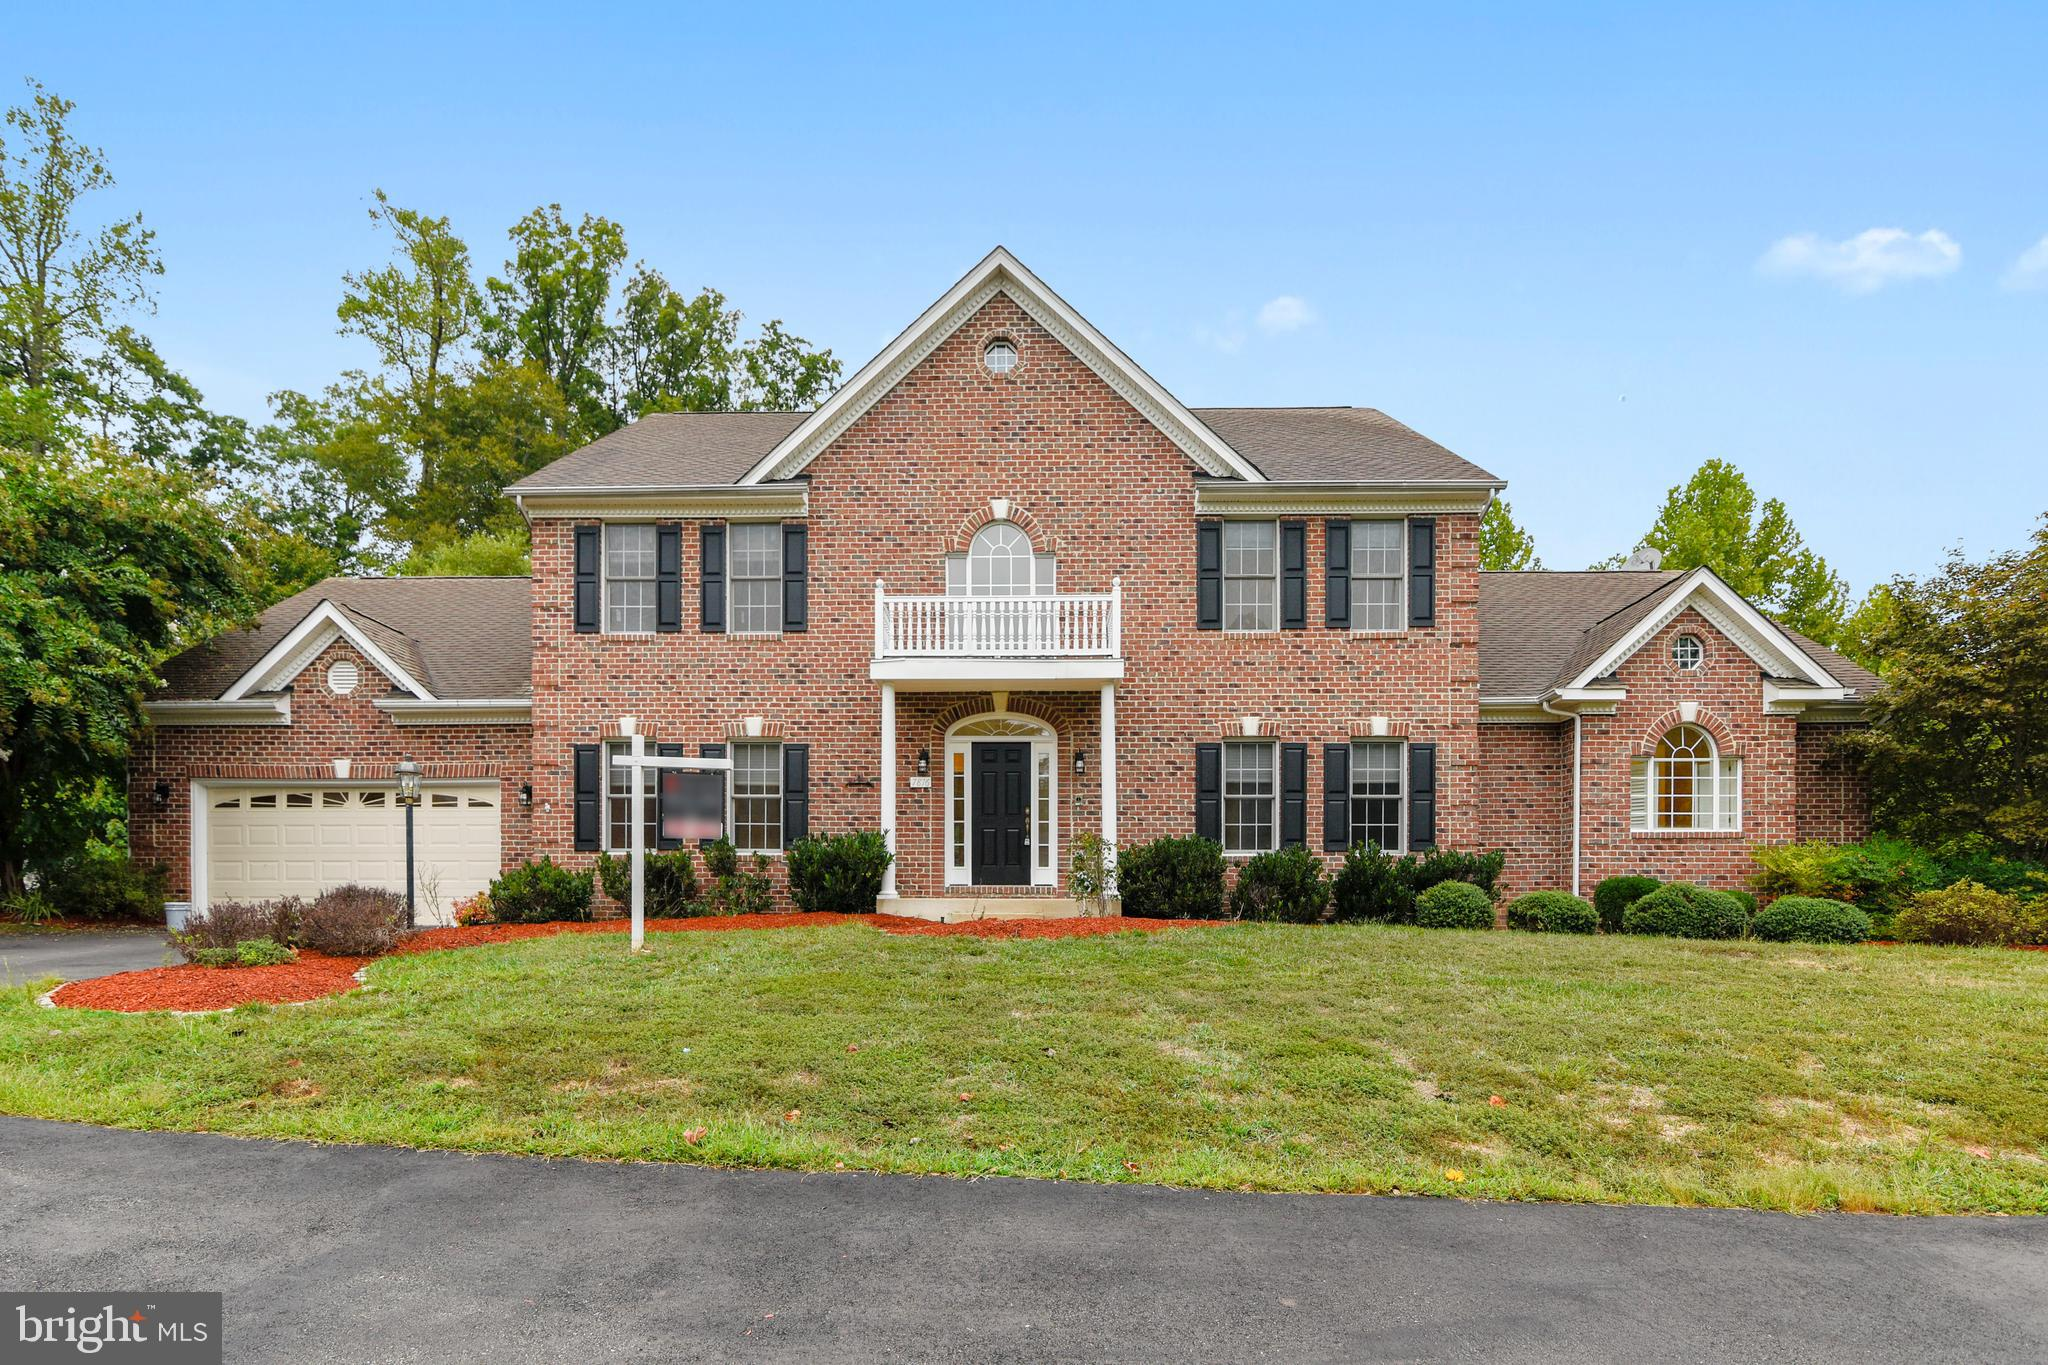 OPEN HOUSE Sunday 9/22 1-4pm! STUNNING 6500+ sq ft colonial on .84 acre lot! Gourmet Kitchen w/ granite counters, NEW 2019 kitchen appliances including wall oven, microwave, and Samsung refrigerator. NEW 2019 hot water heater and HVAC less than two years old. Beautiful hardwood flooring, NEW carpet, and freshly painted throughout. Main level master with sitting room/office, Walk-In Closets, Luxury Master Bath, 4-season deck, 2-story family room, walk-out basement, red cedar sauna, wet-bar.  CONVENIENT LOCATION! Close to Major Routes, Ft. Belvoir, Pohick Trail & Creek, Metro, Springfield Town Center & more!